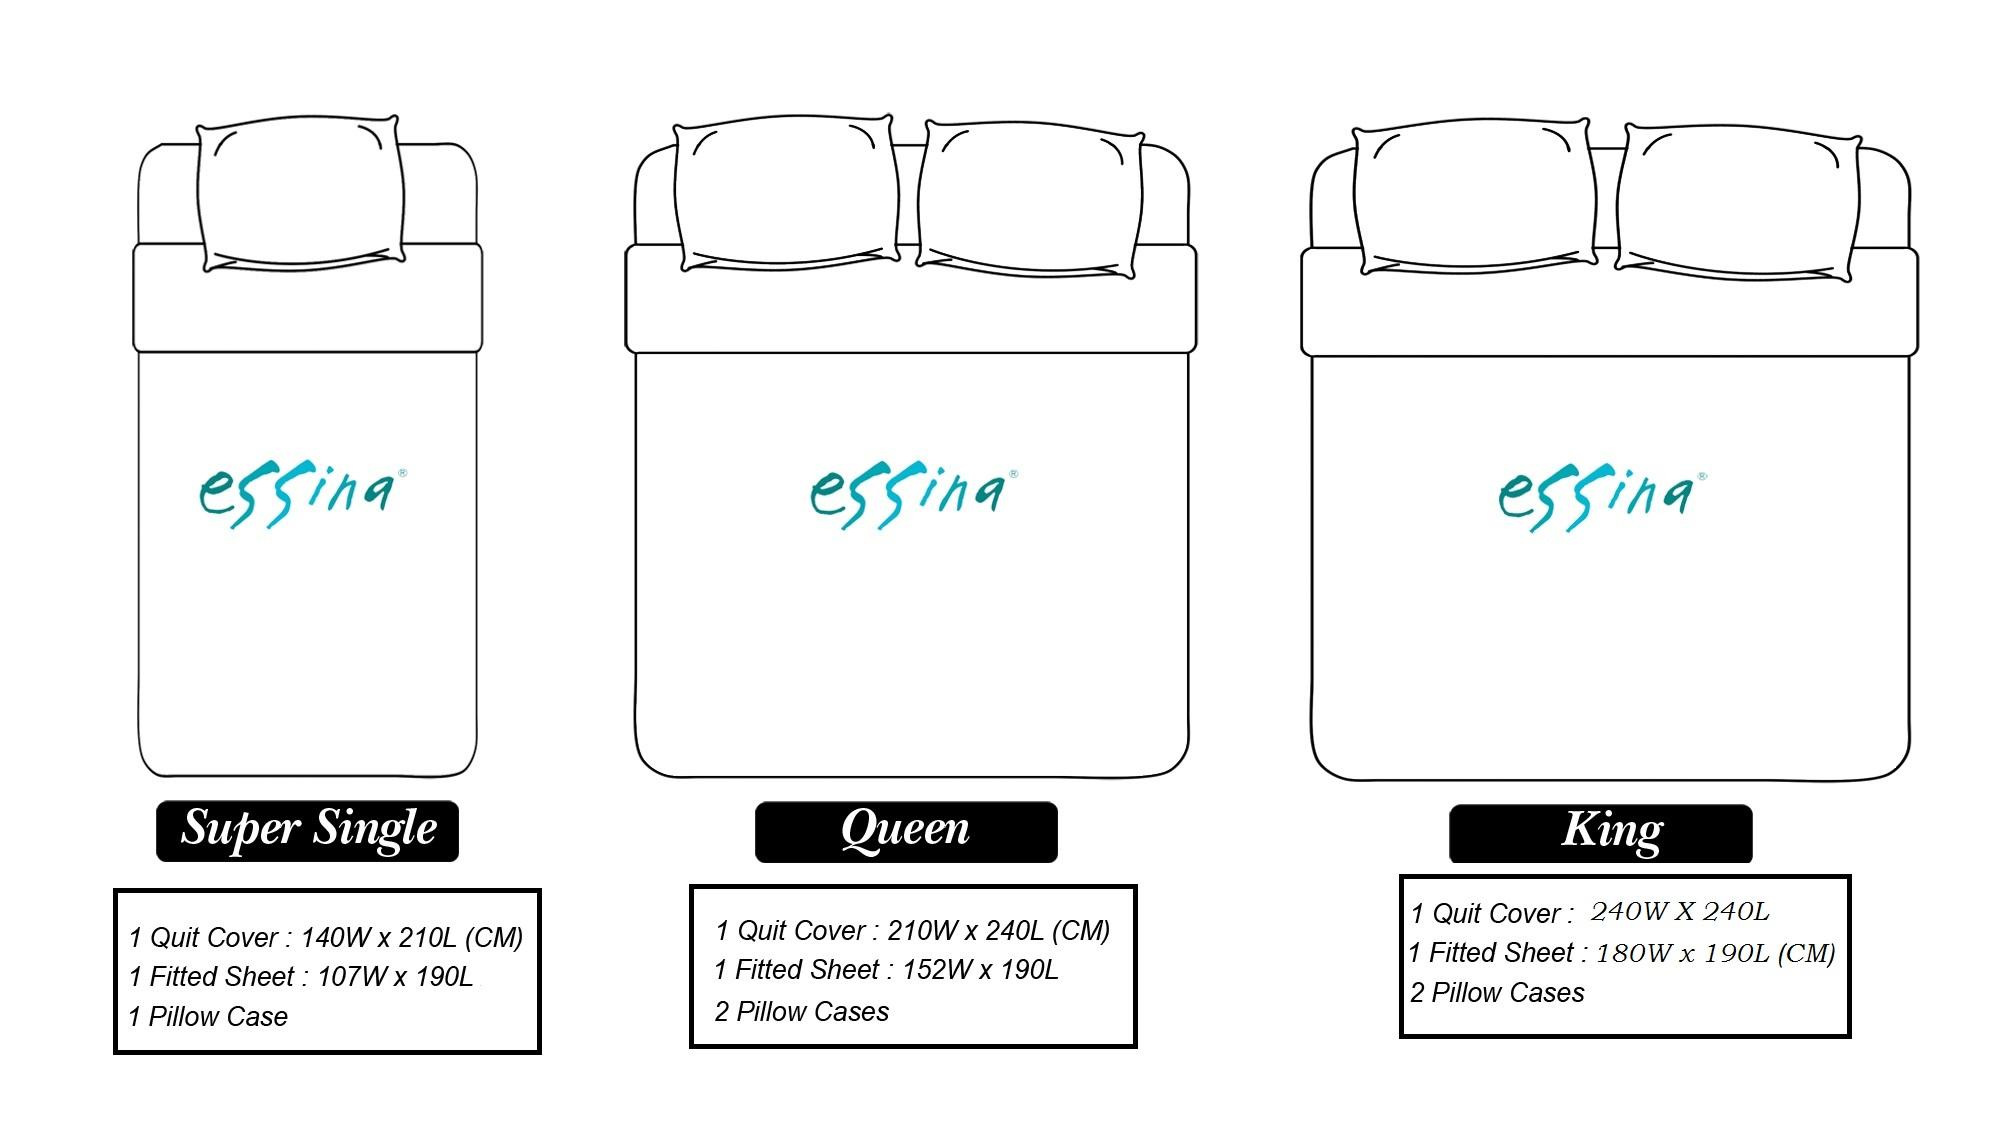 Essina 100% Cotton 620TC Cadar Fitted Bedsheet Queen 40cm Mattress with Quilt Cover - Larnaca ( Modern , Contempo )